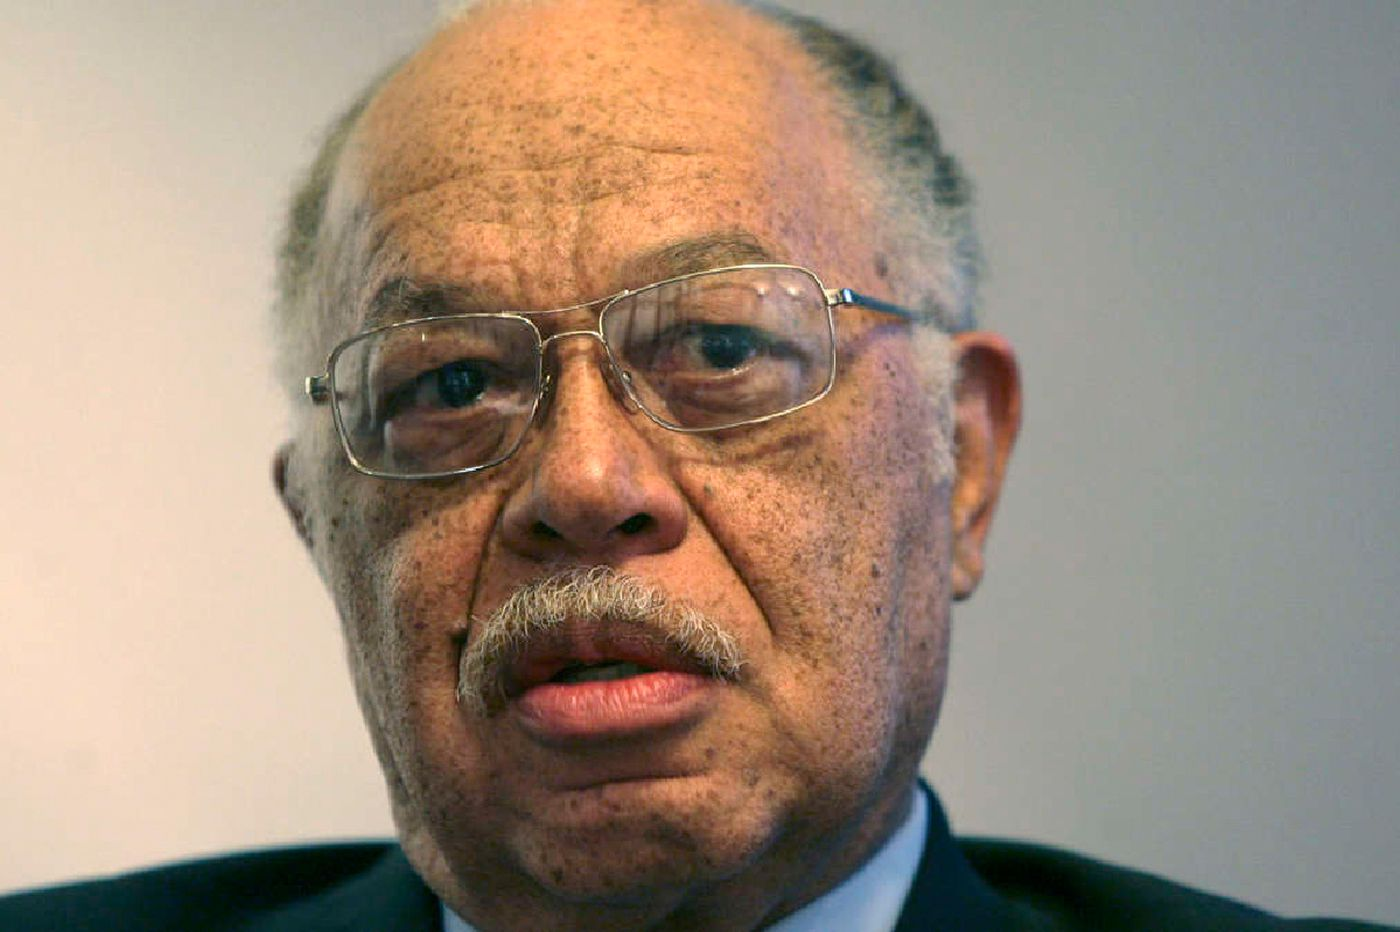 Imprisoned abortion doc Kermit Gosnell sues Philly D.A., Daily News